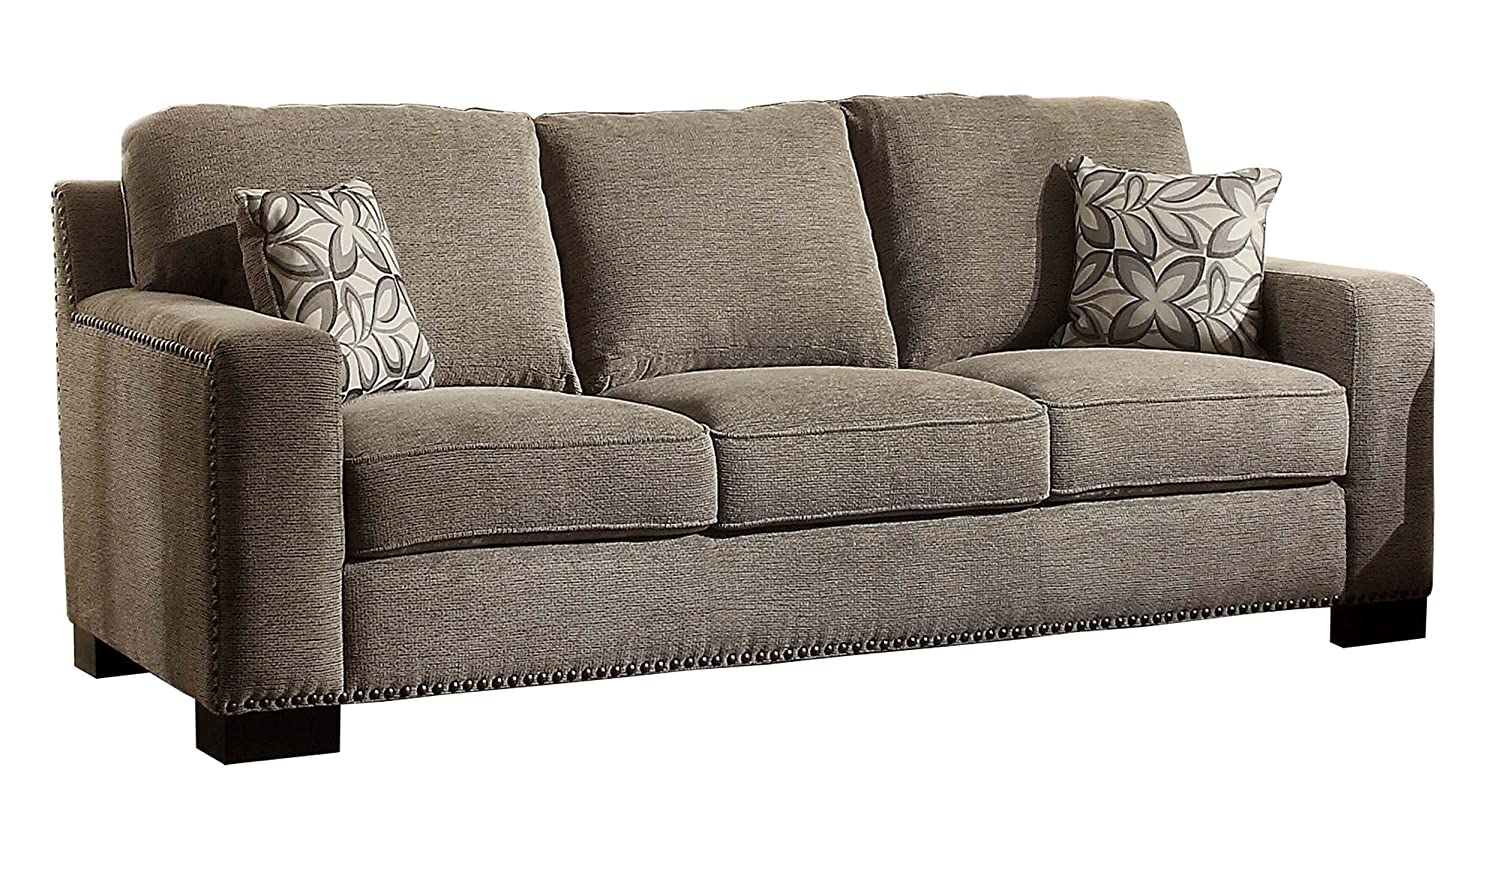 Homelegance Gowan Upholstered Modern Track Arm Design Sofa with Nail Heads Trim Accent Chenille With Floral Toss